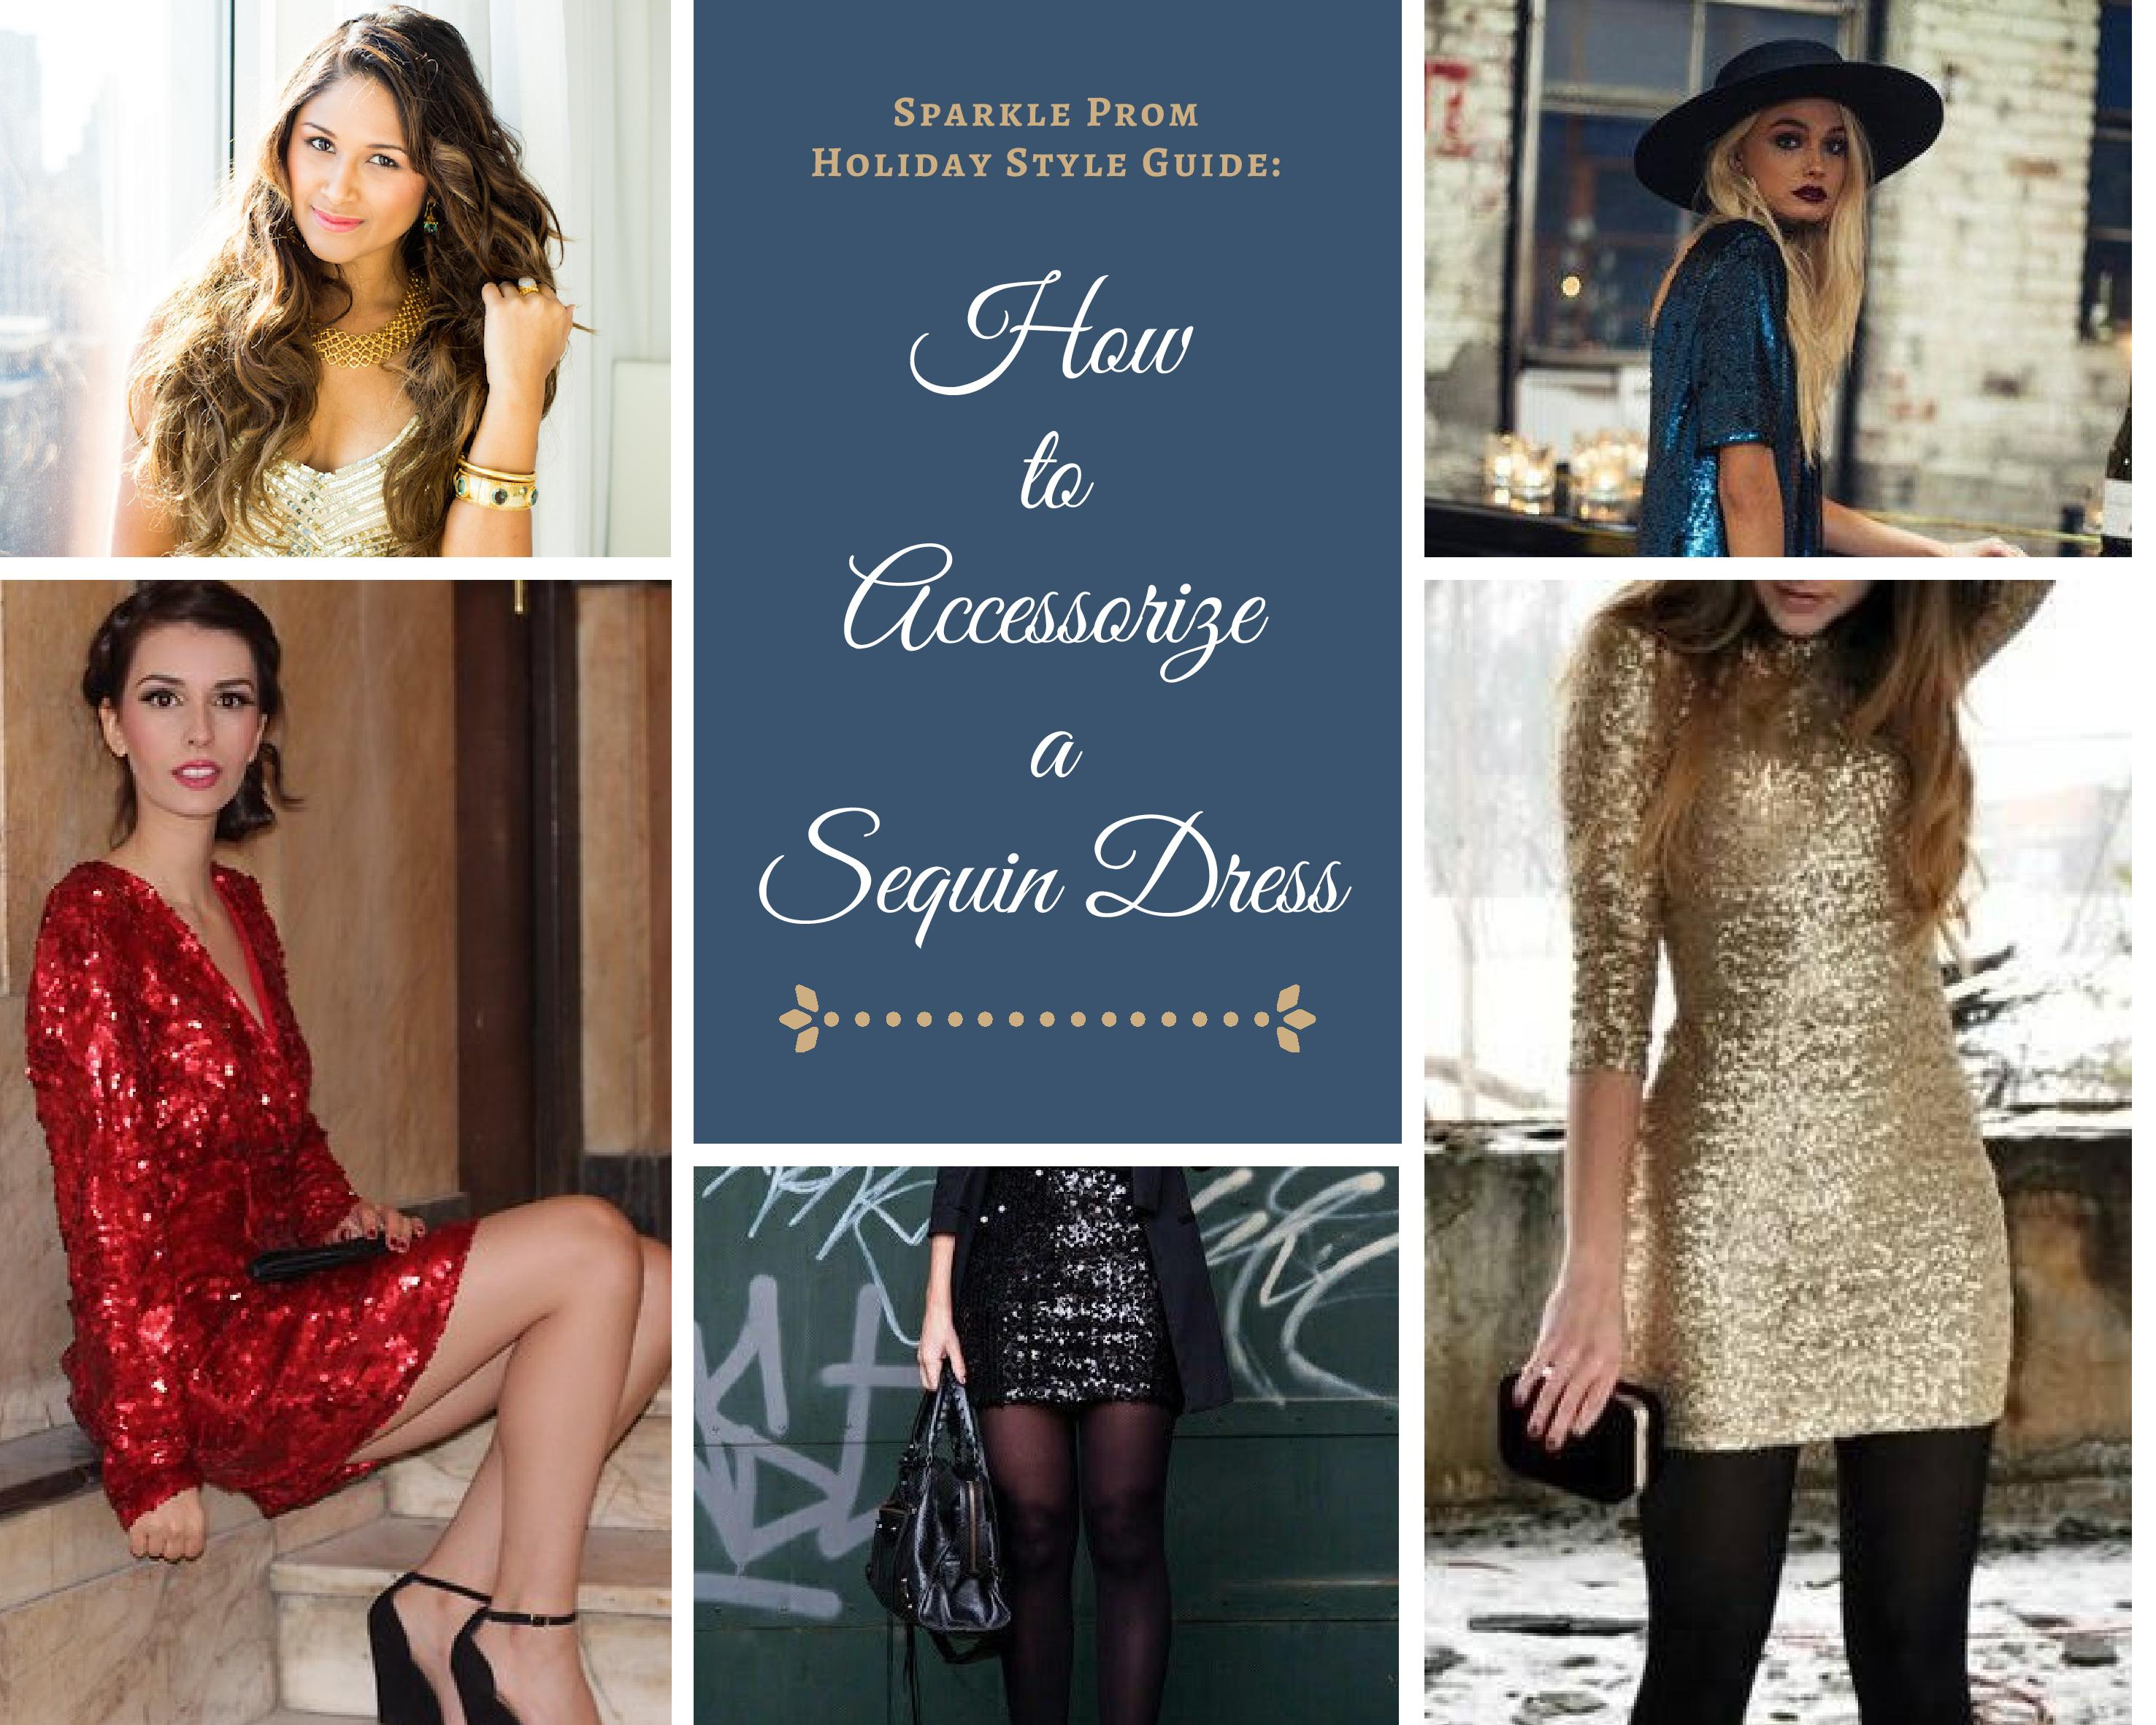 79431f2ad49 Holiday Style Guide  How to Accessorize a Sequin Dress – Sparkle Prom  Fashion Blog